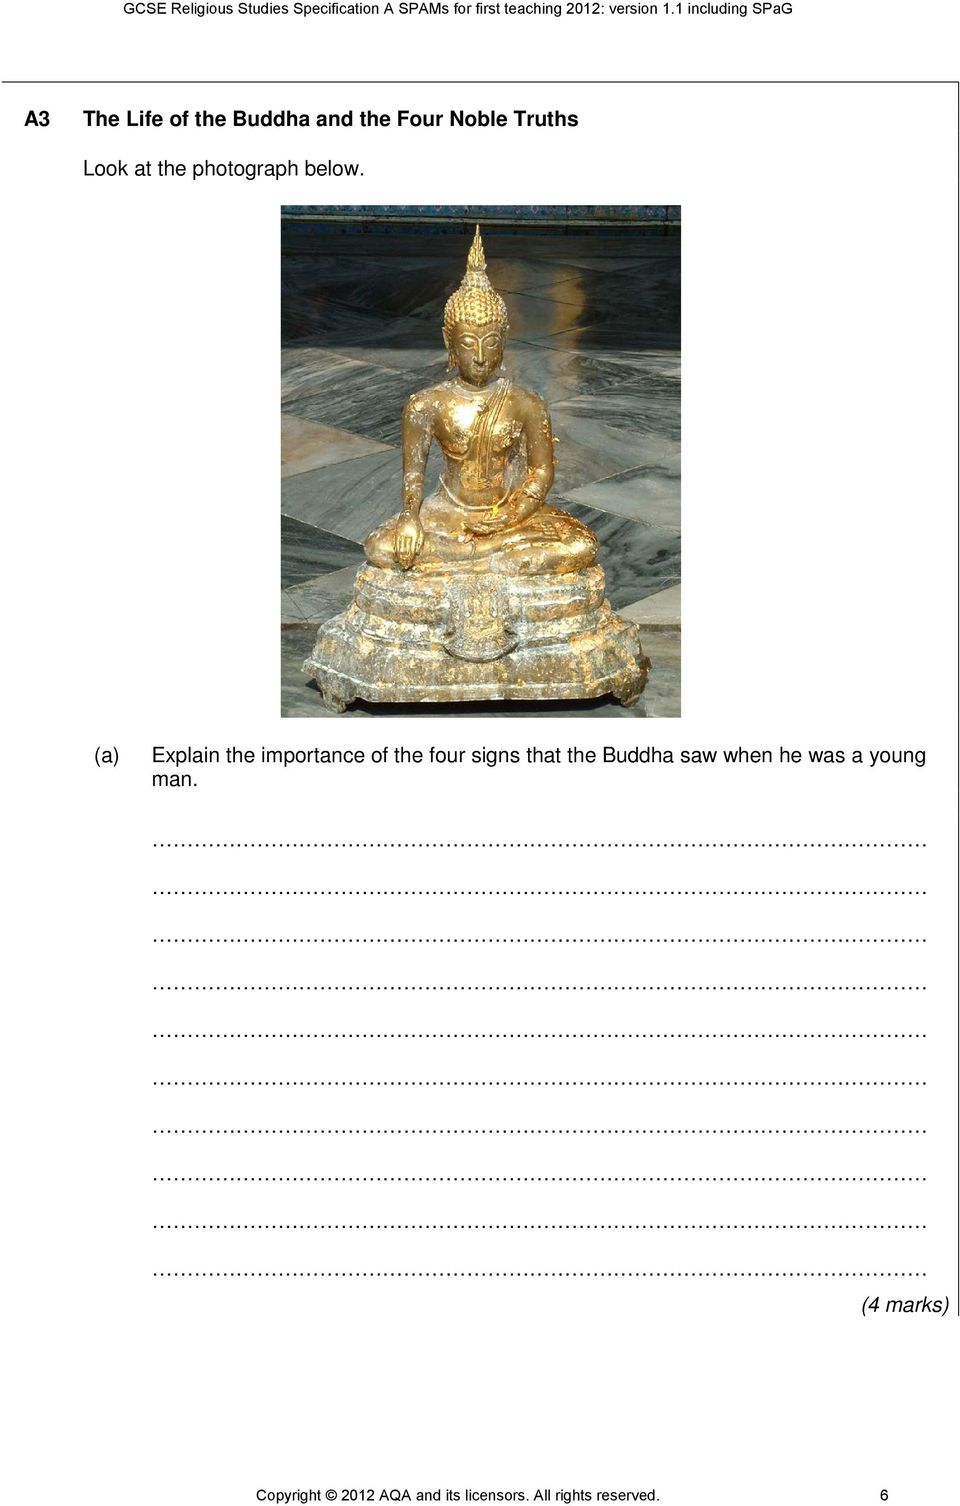 (a) Explain the importance of the four signs that the Buddha